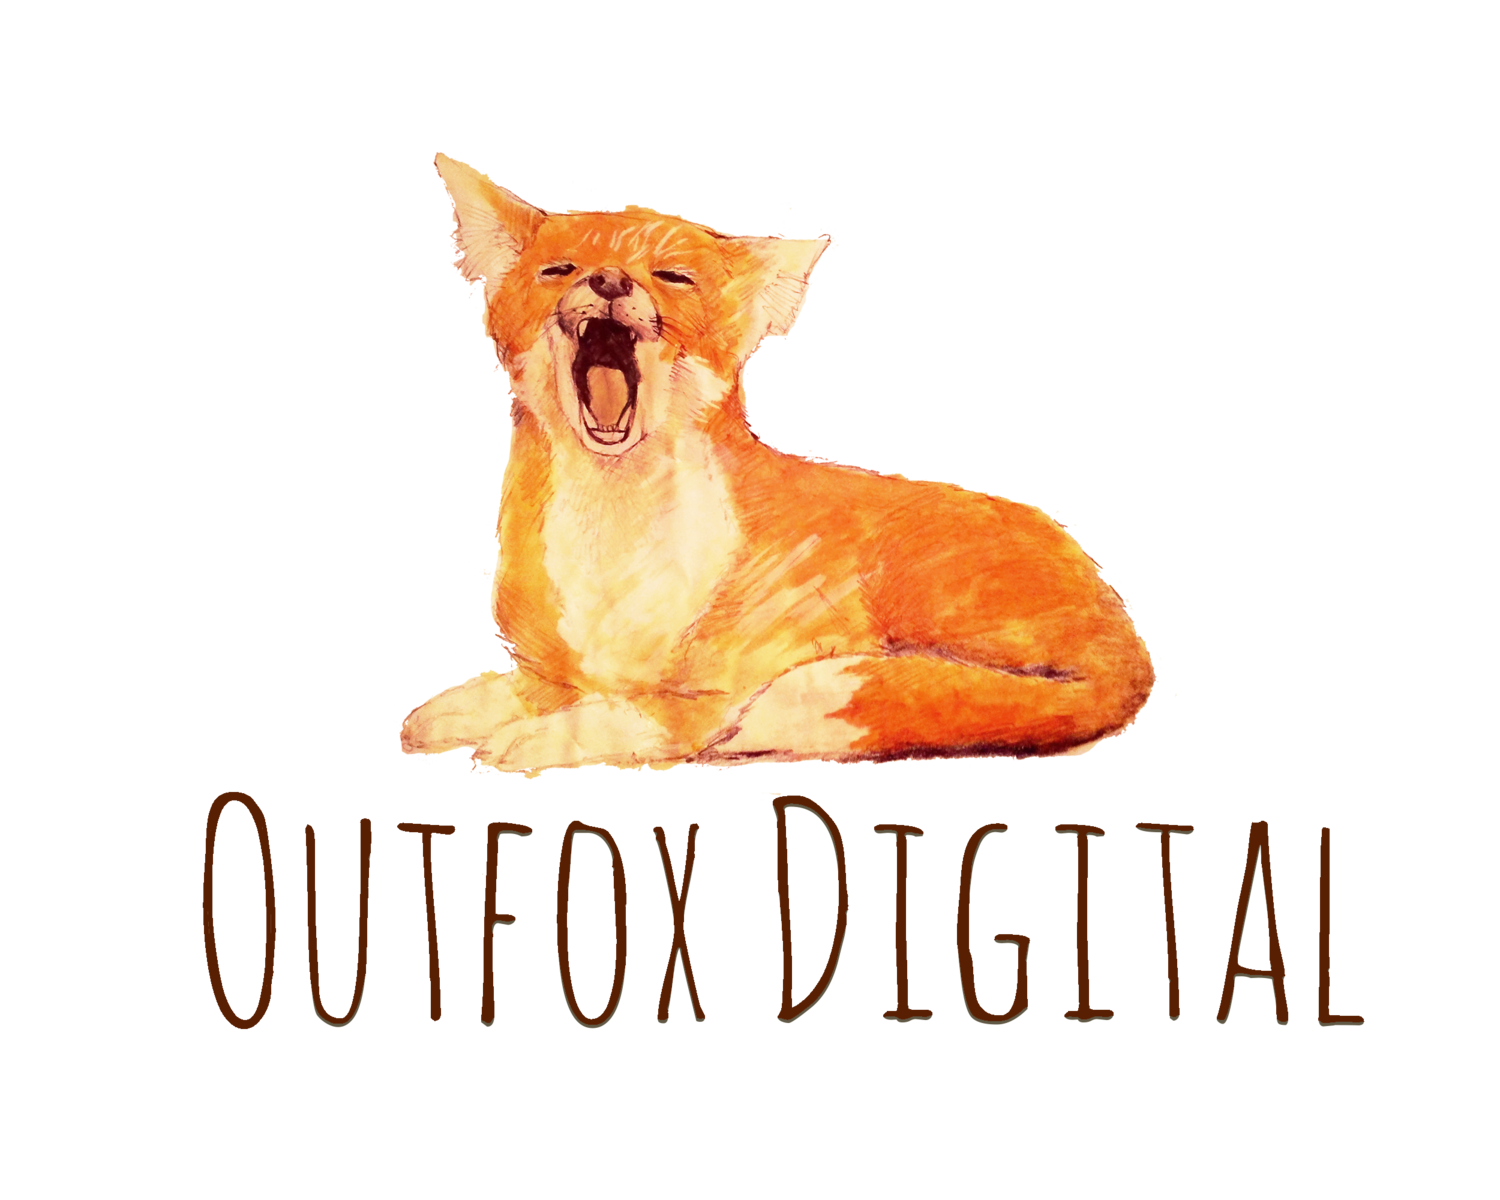 Outfox Digital